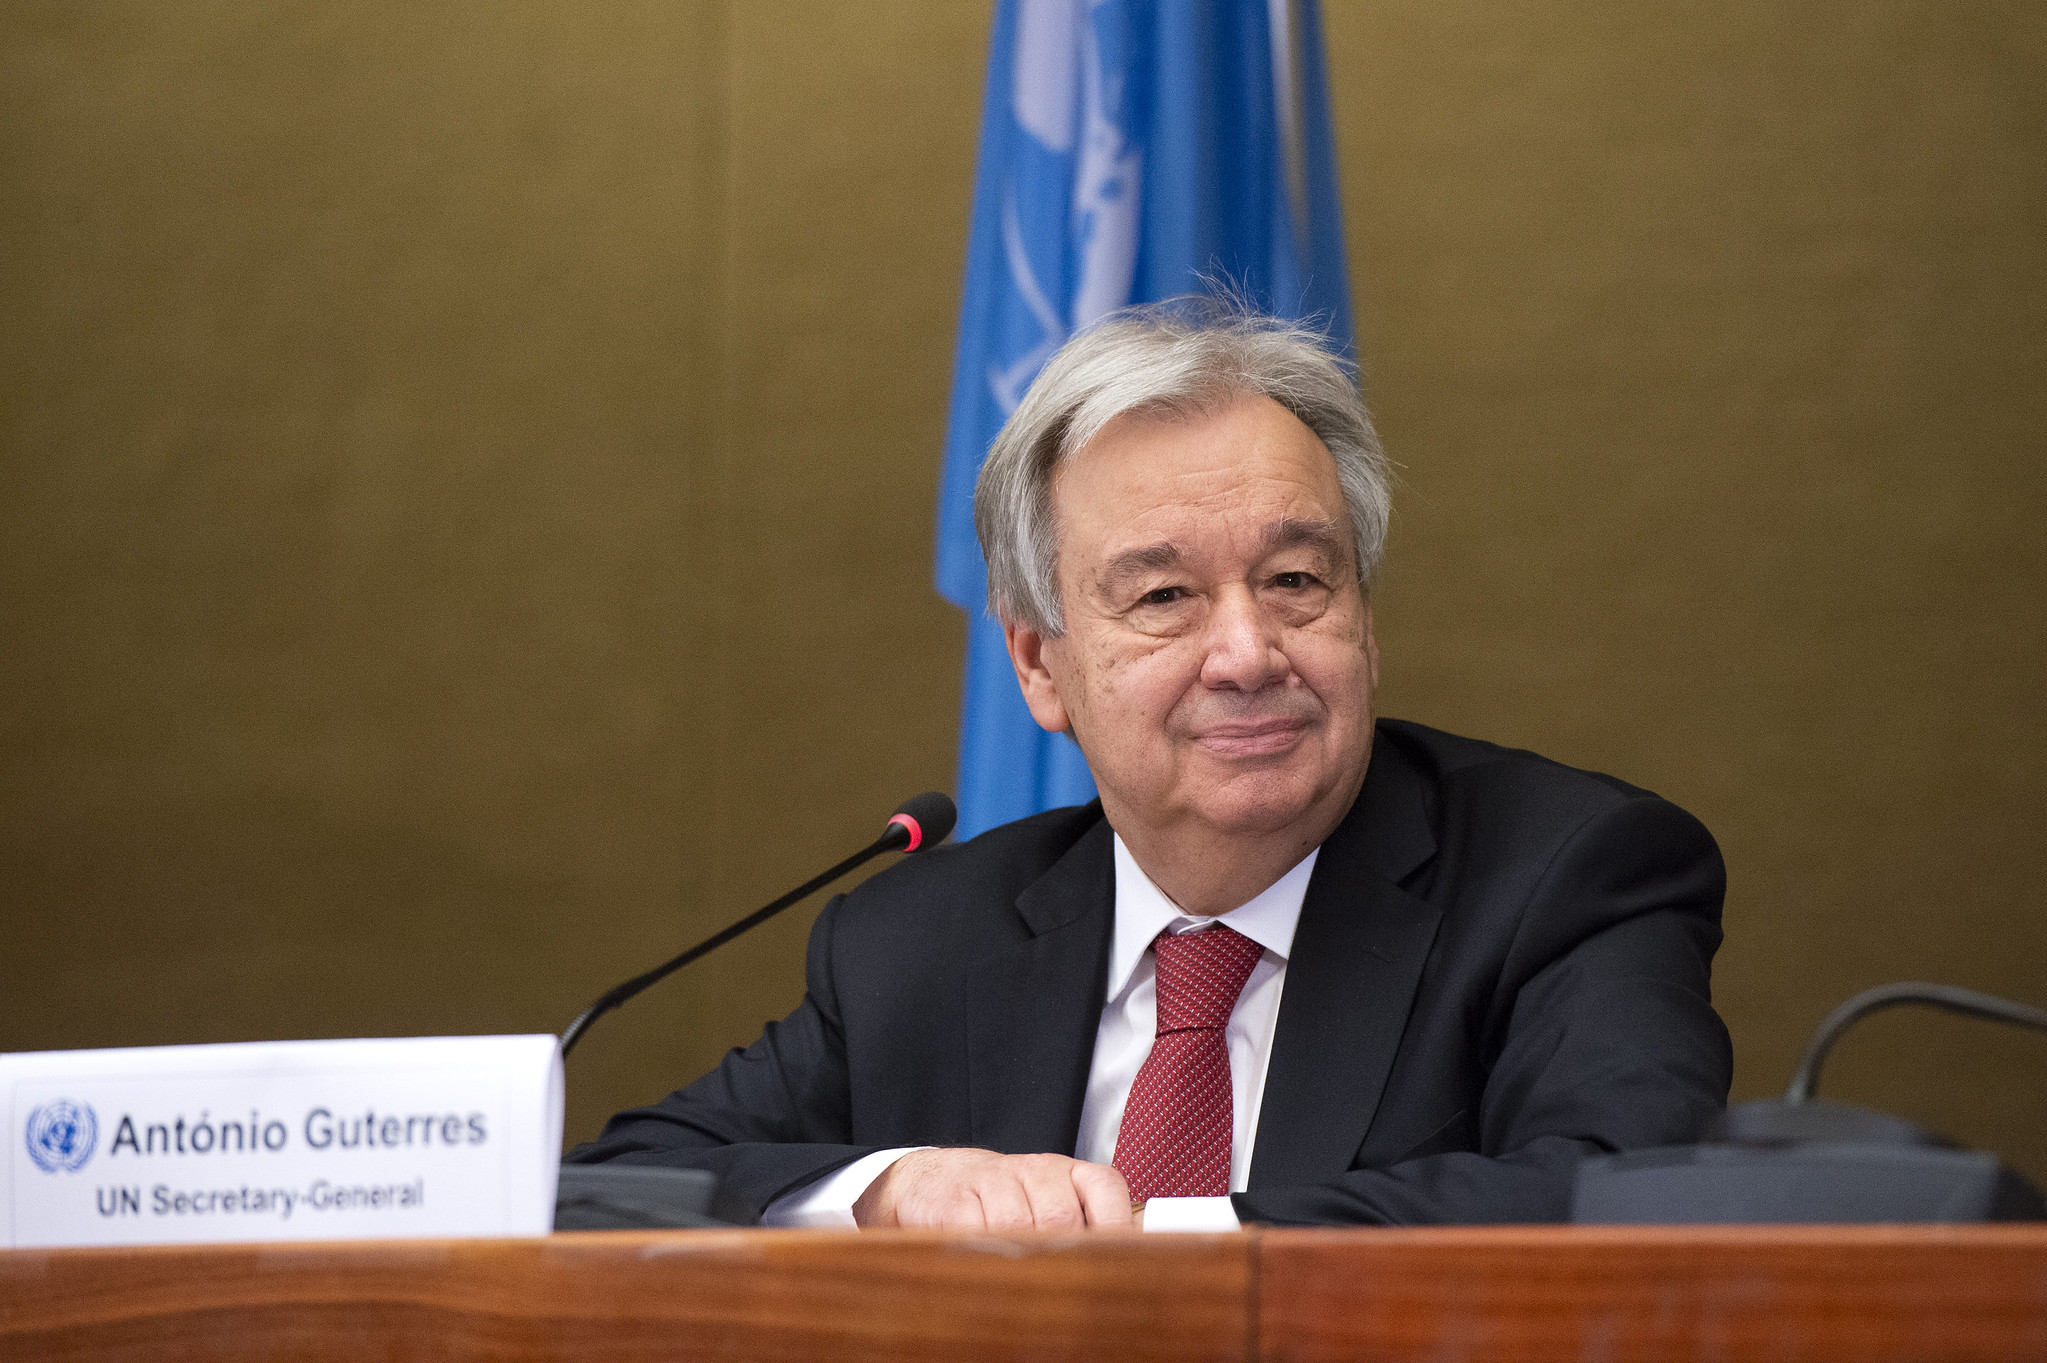 Guterres: Everyone has Duty to Help Refugees Rebuild their Lives